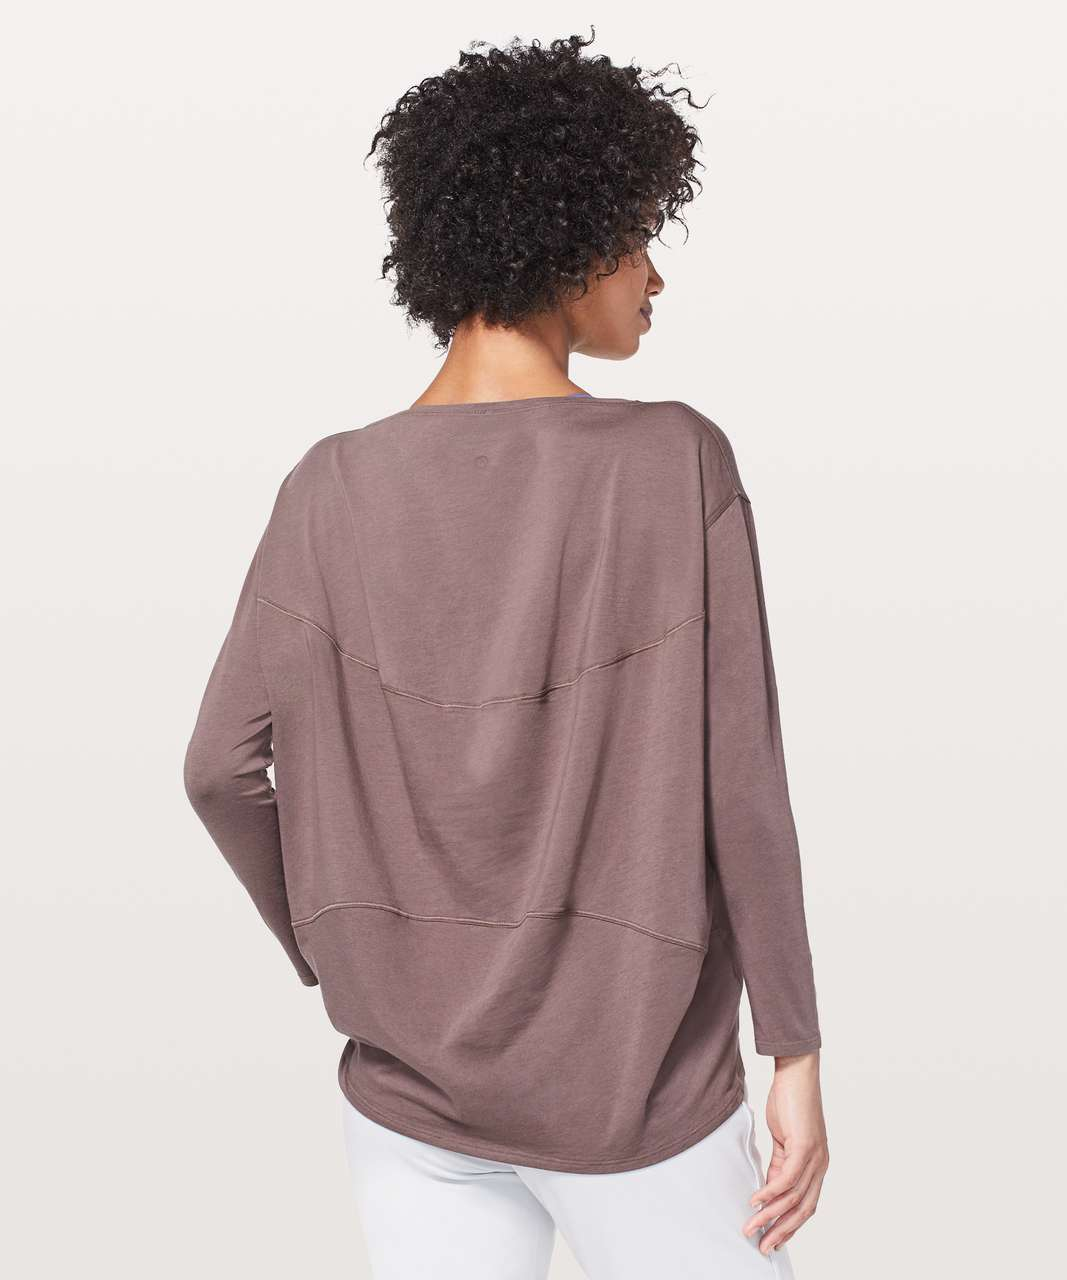 Lululemon Back In Action Long Sleeve - Antique Bark